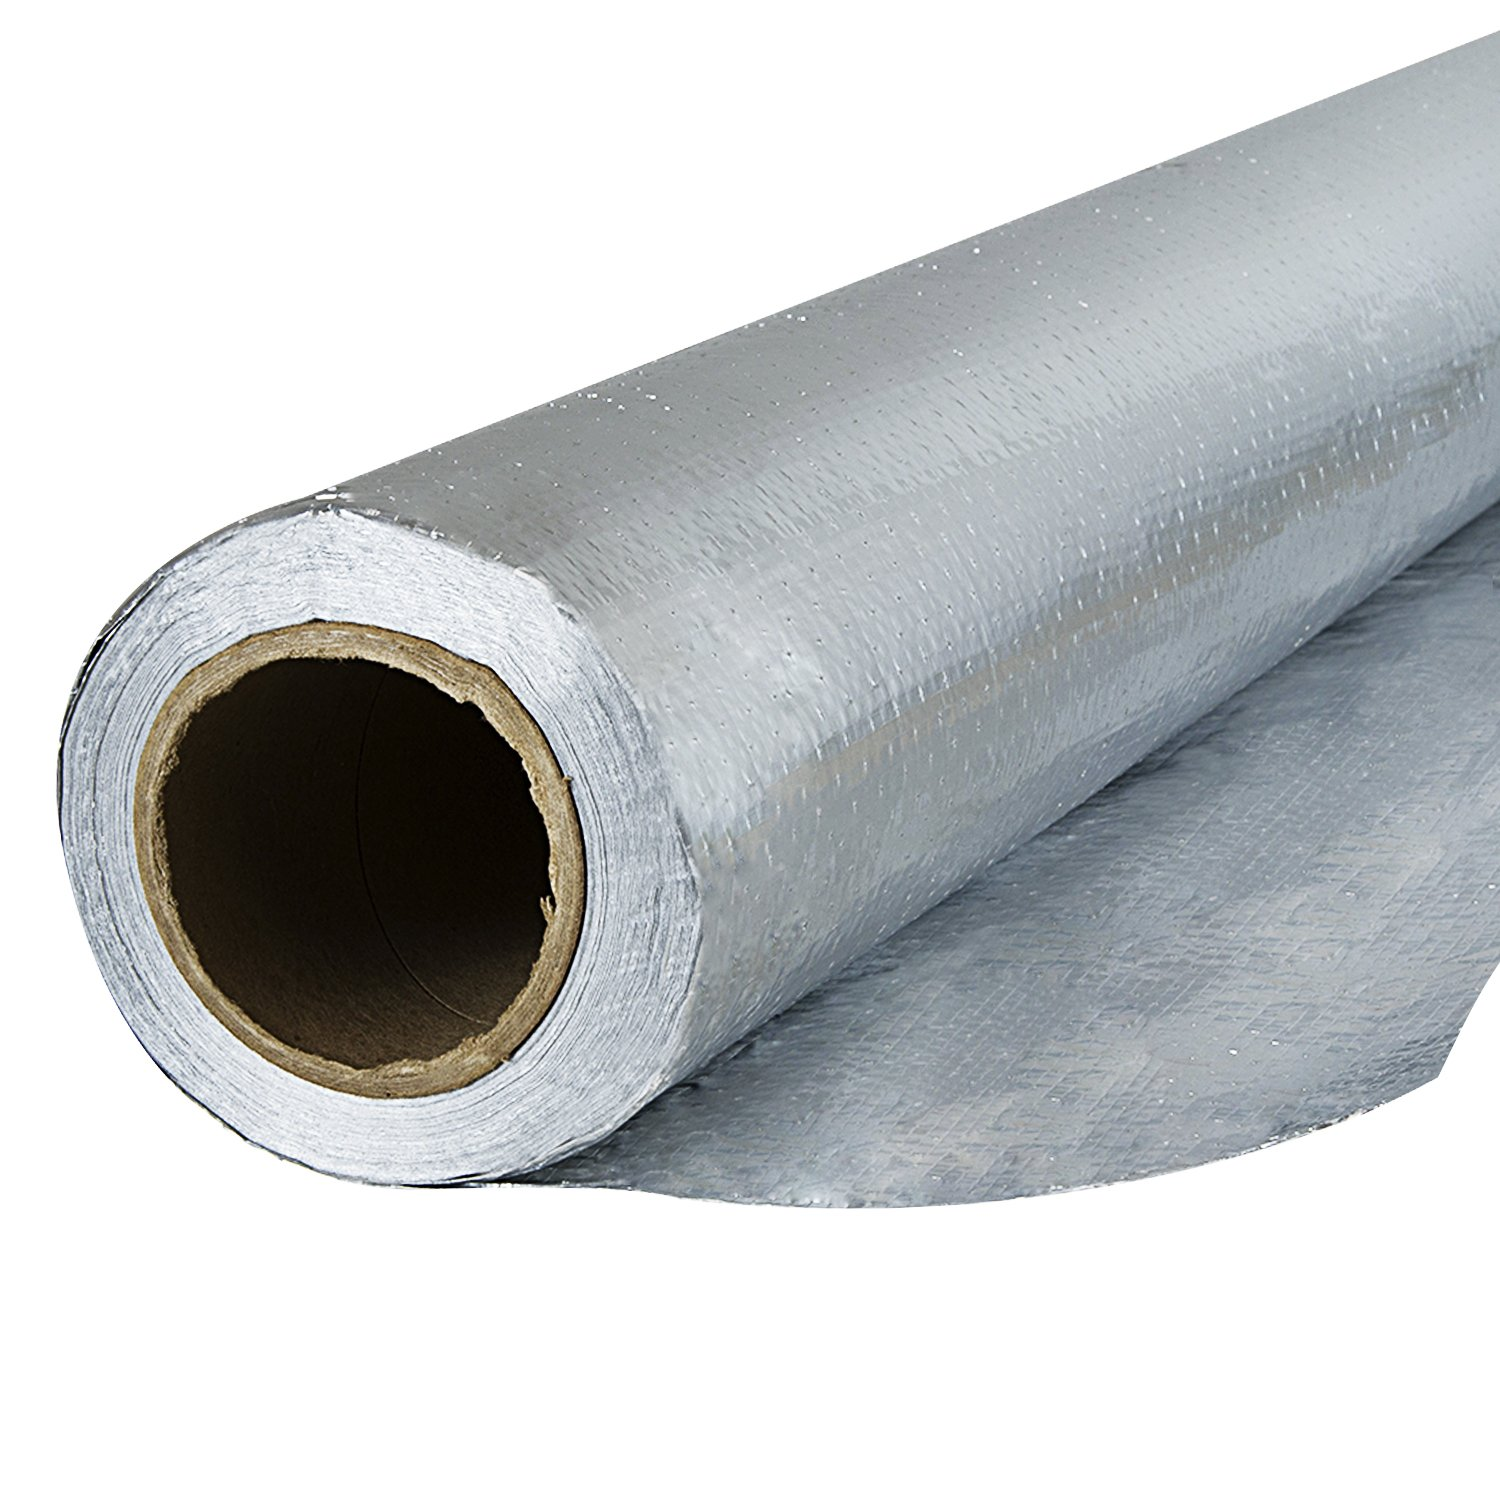 Houseables Radiant Barrier Insulation, Aluminum Foil Roll, 1000 Square Ft. (250 x 4 Feet), Reflective, Solar Guard Backed Material, Heat Barriers, for Attic, House Wraps, Offices, Tear Resistant